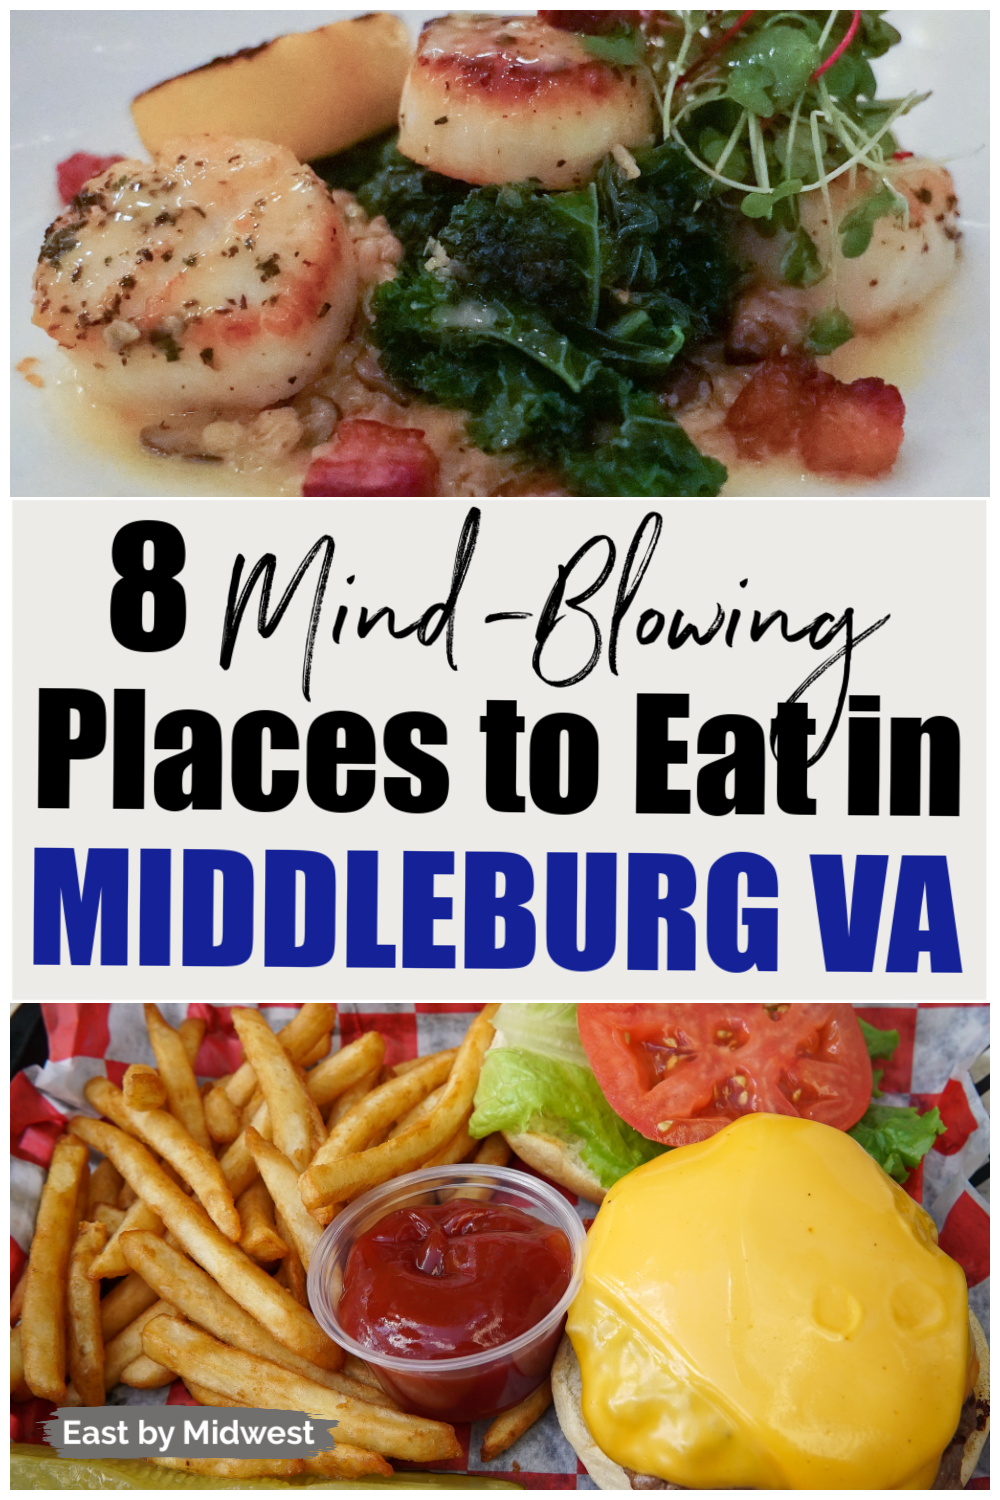 8 Places to Eat in Middleburg, Virginia That Will Blow Your Mind